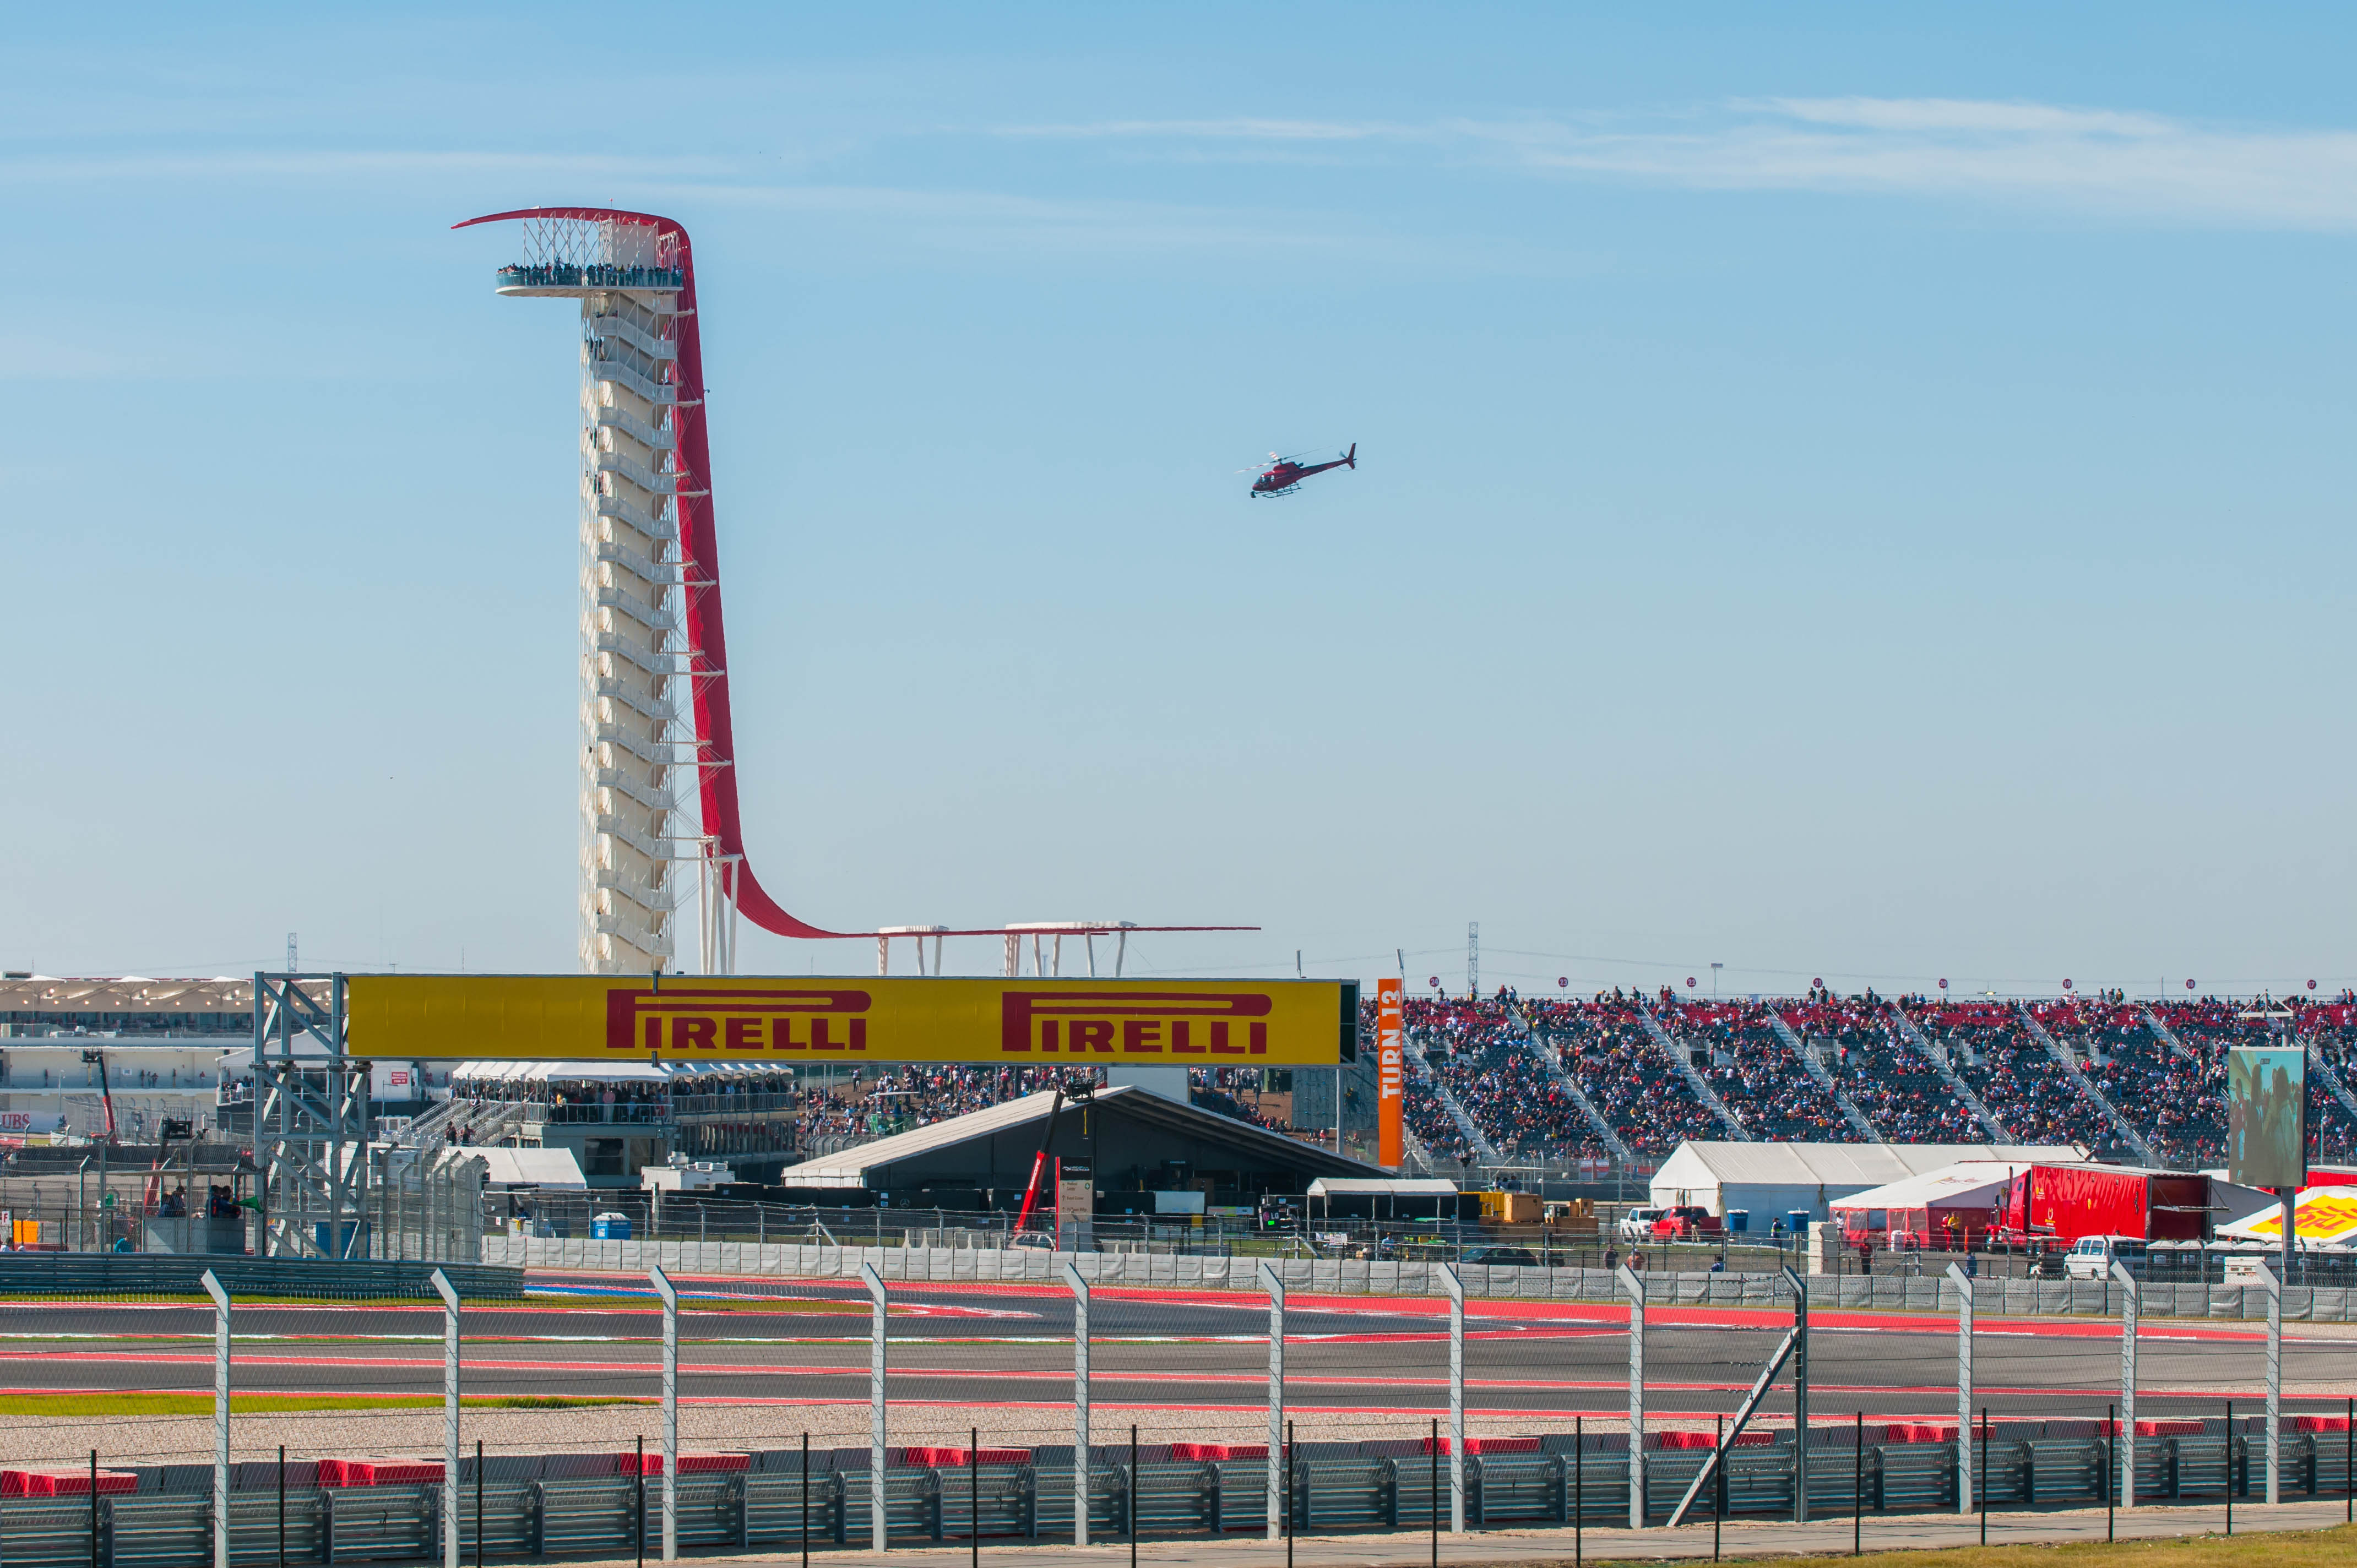 cota-tower-and-track